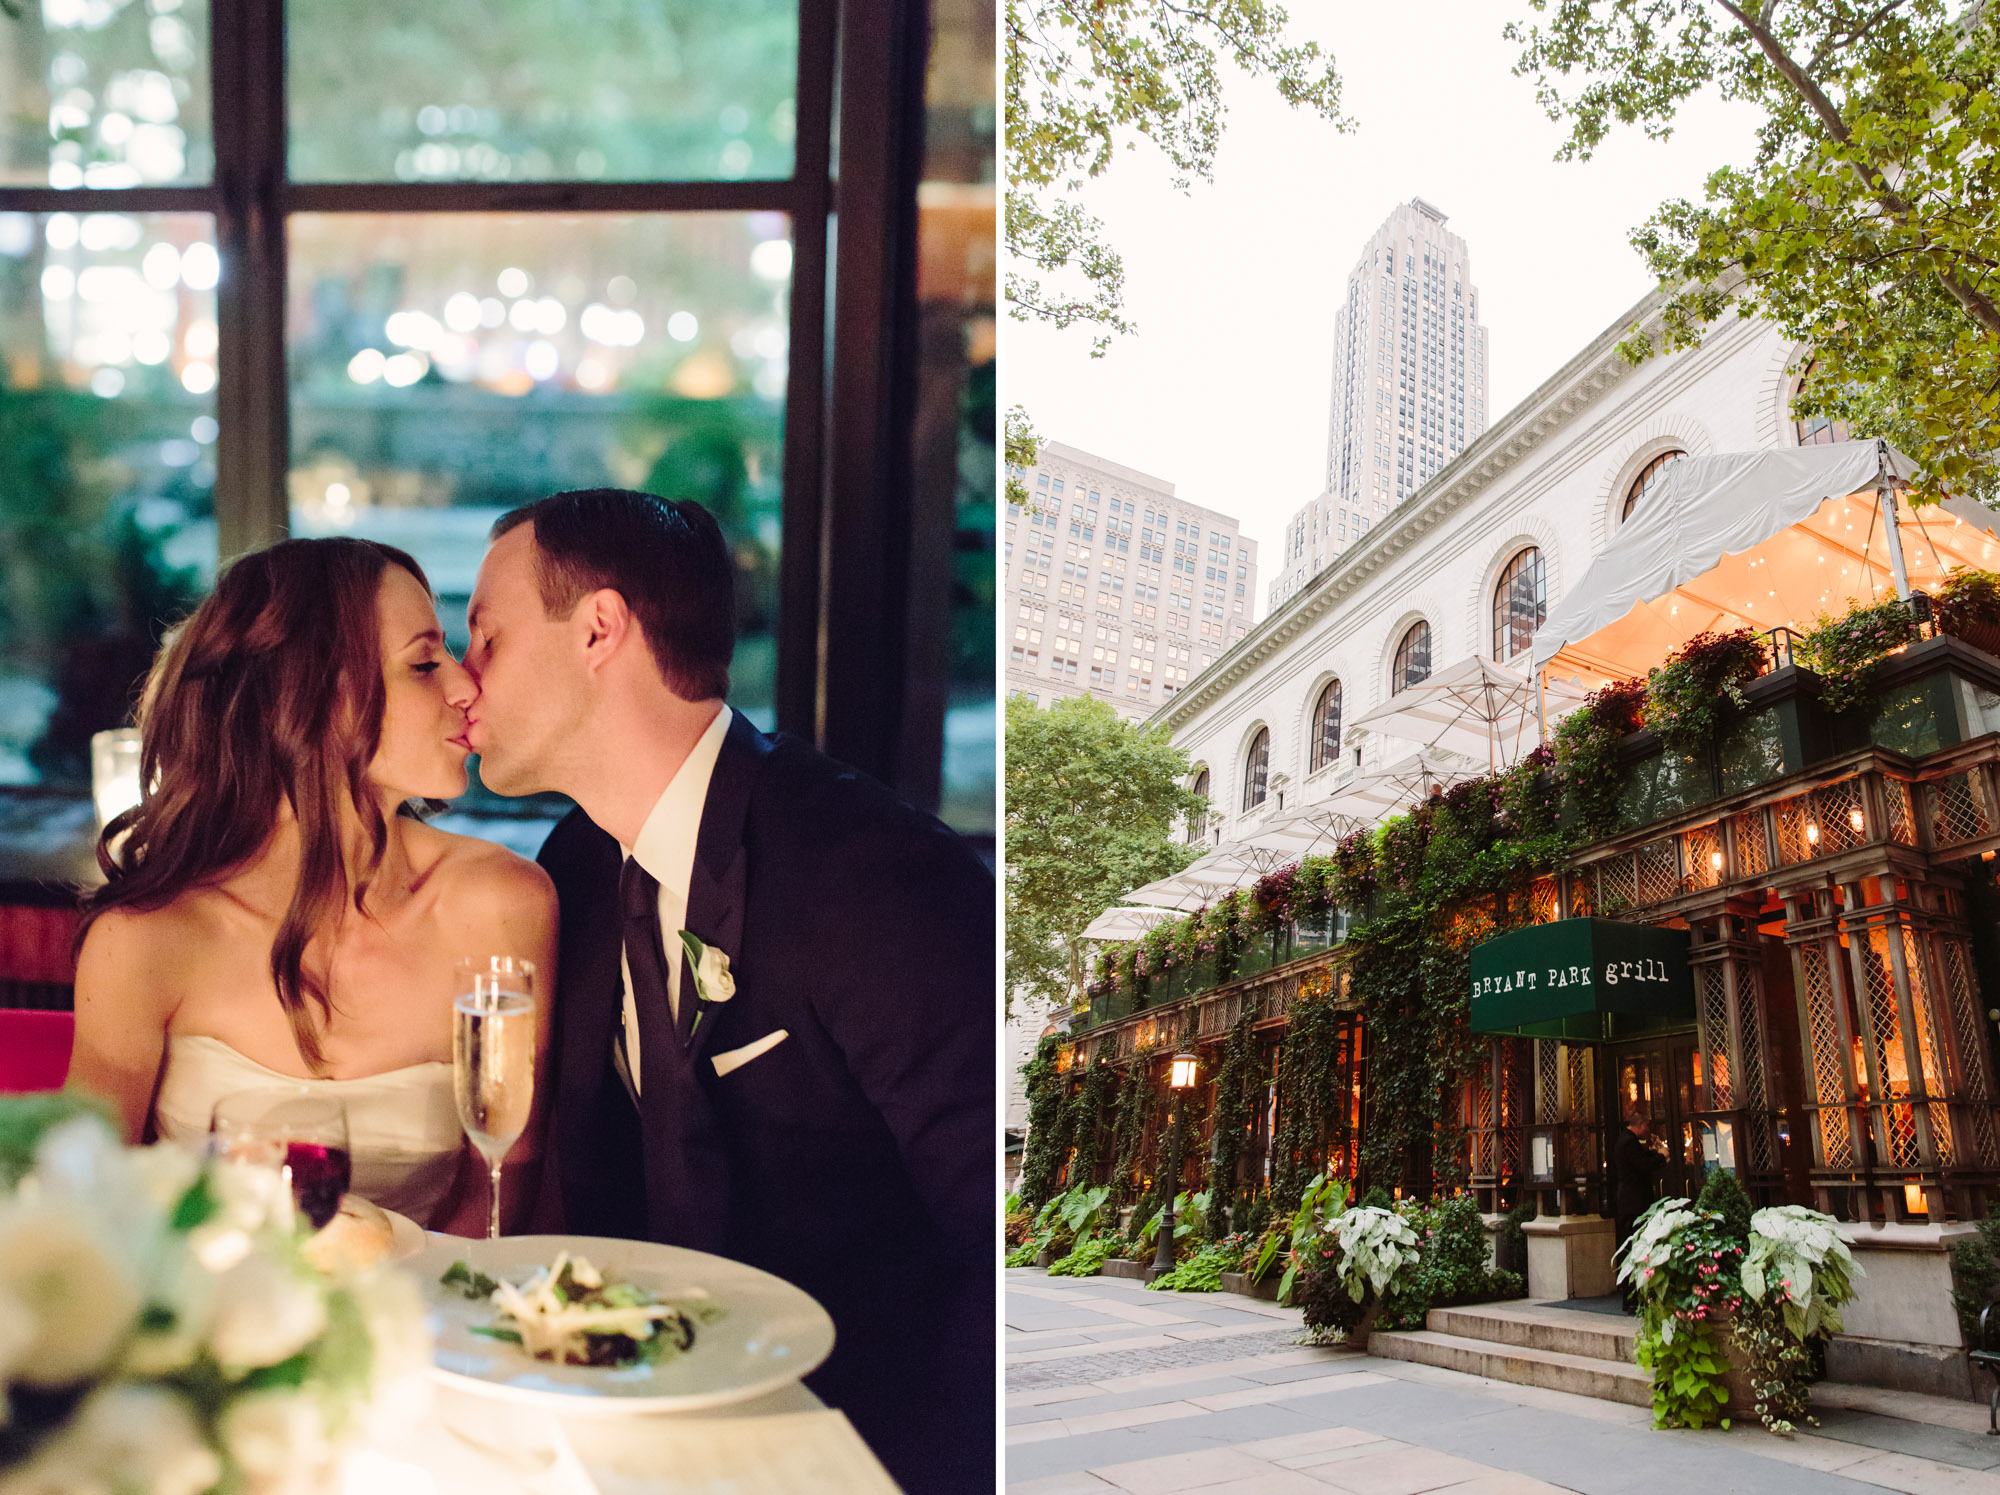 55_Ali_Lloyd_Bryant_Park_Grill_Wedding_NYC_Tanya_Salazar_Photography.jpg